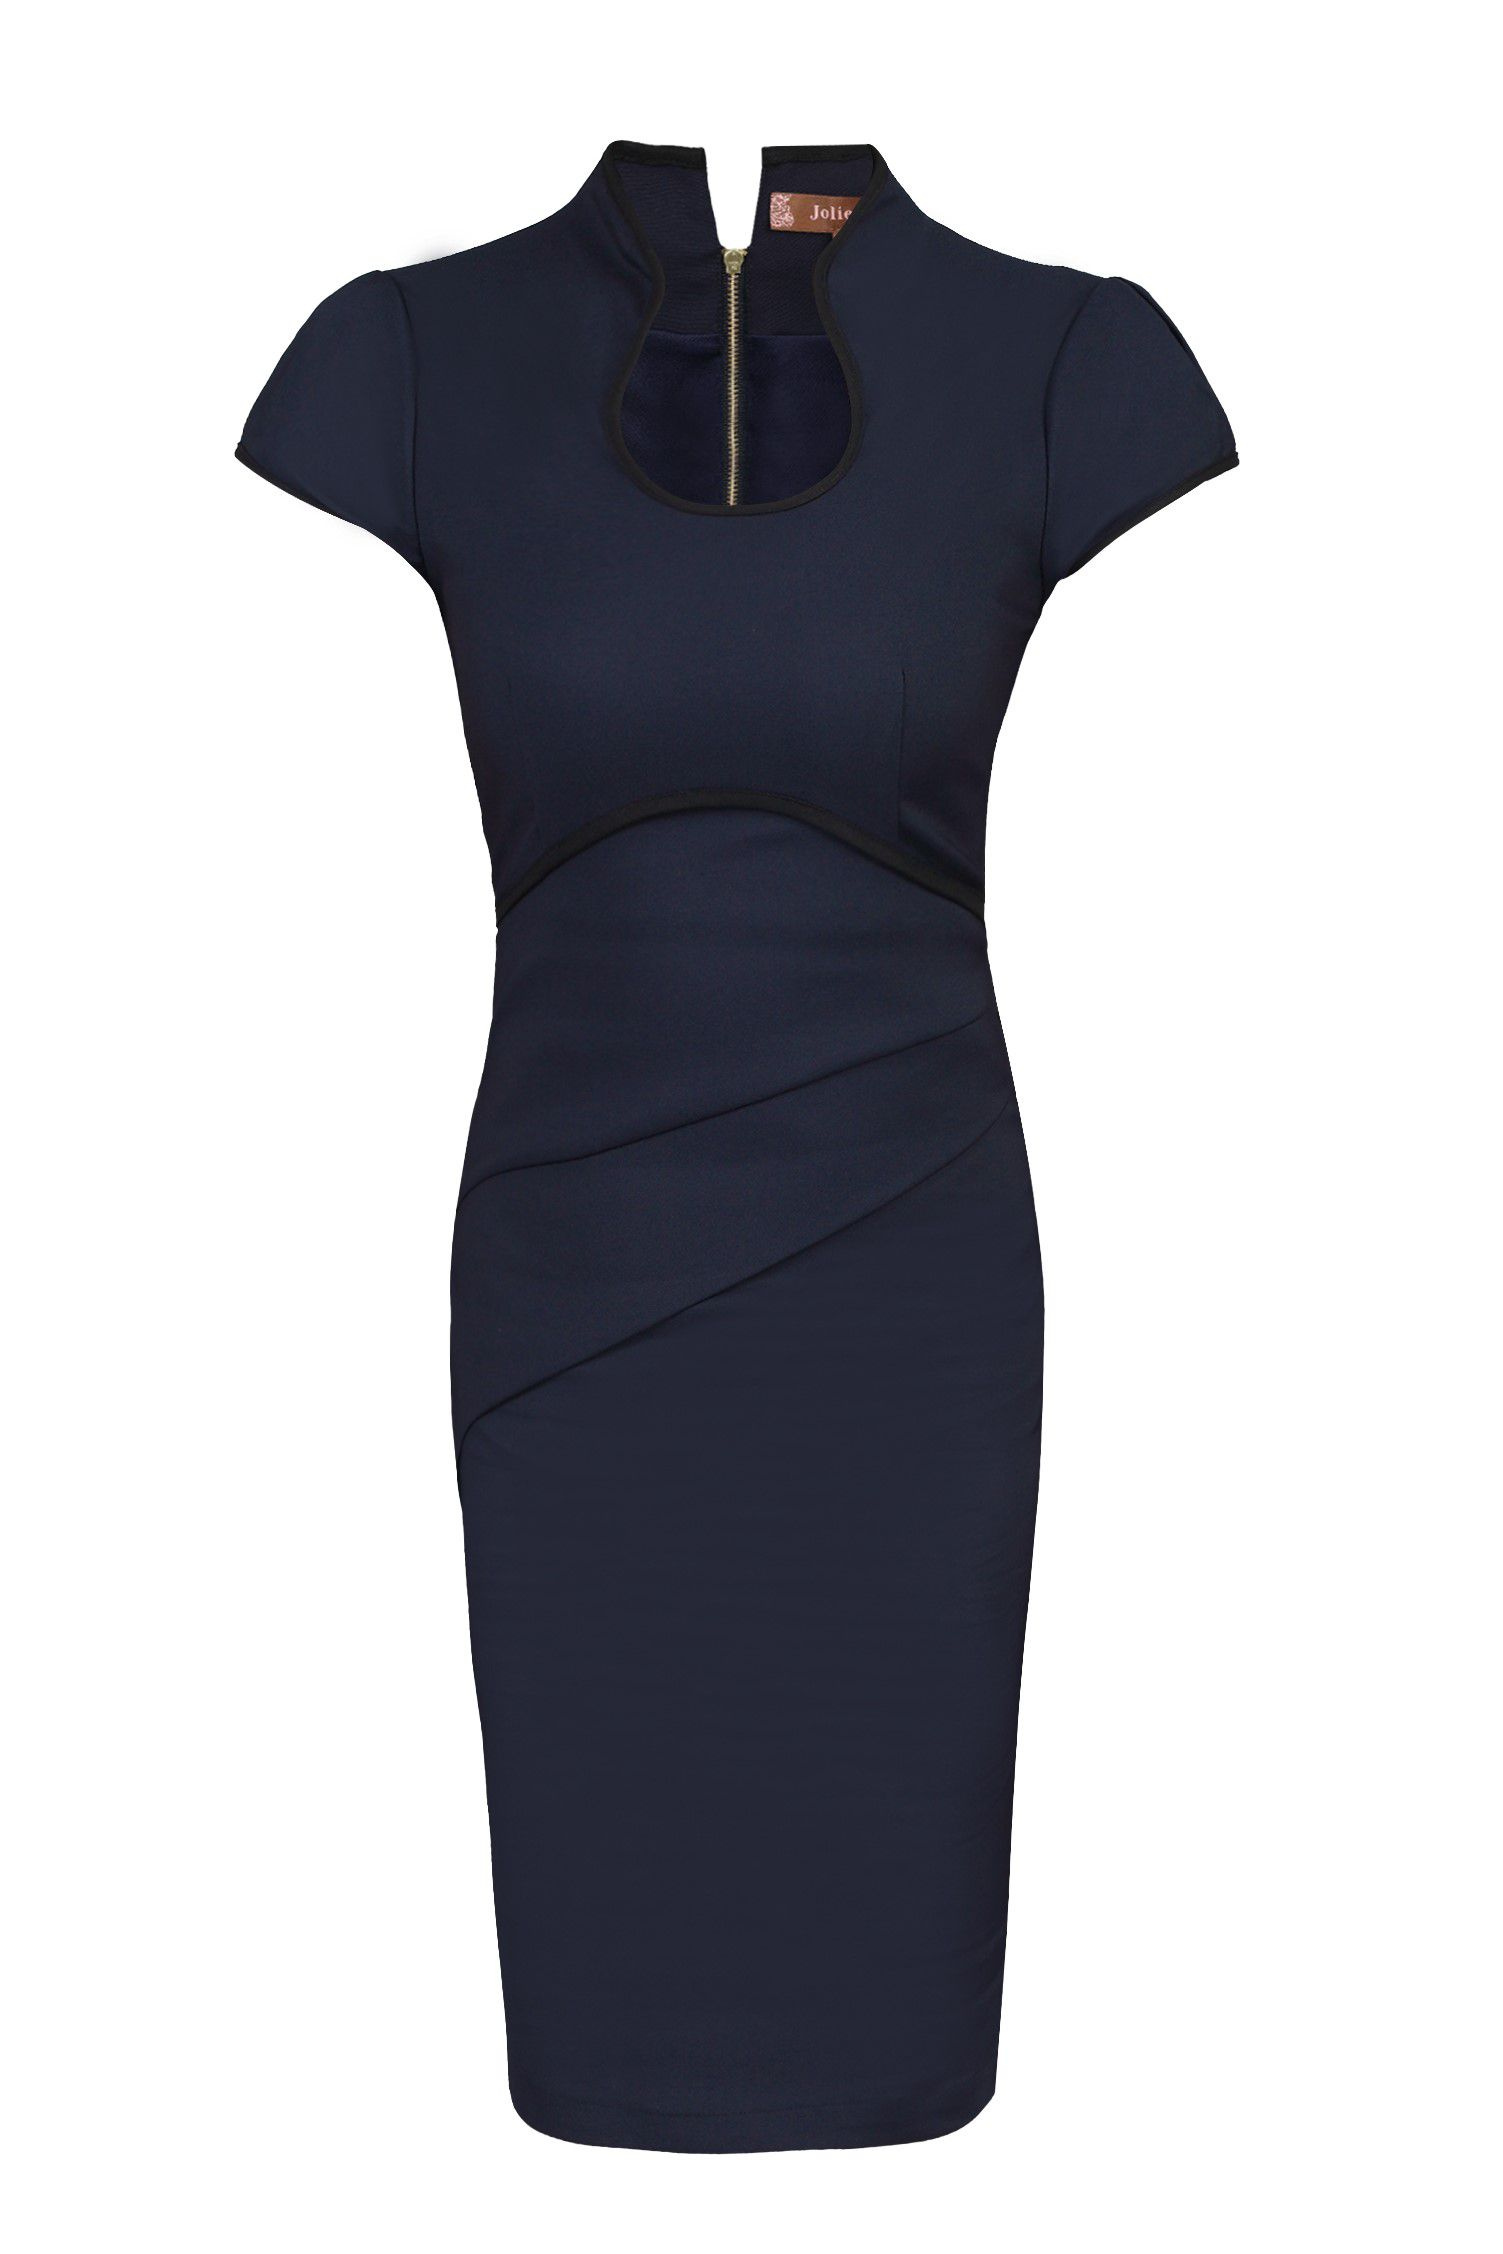 Jolie Moi Contrast Trimmed High Collar Dress, Blue